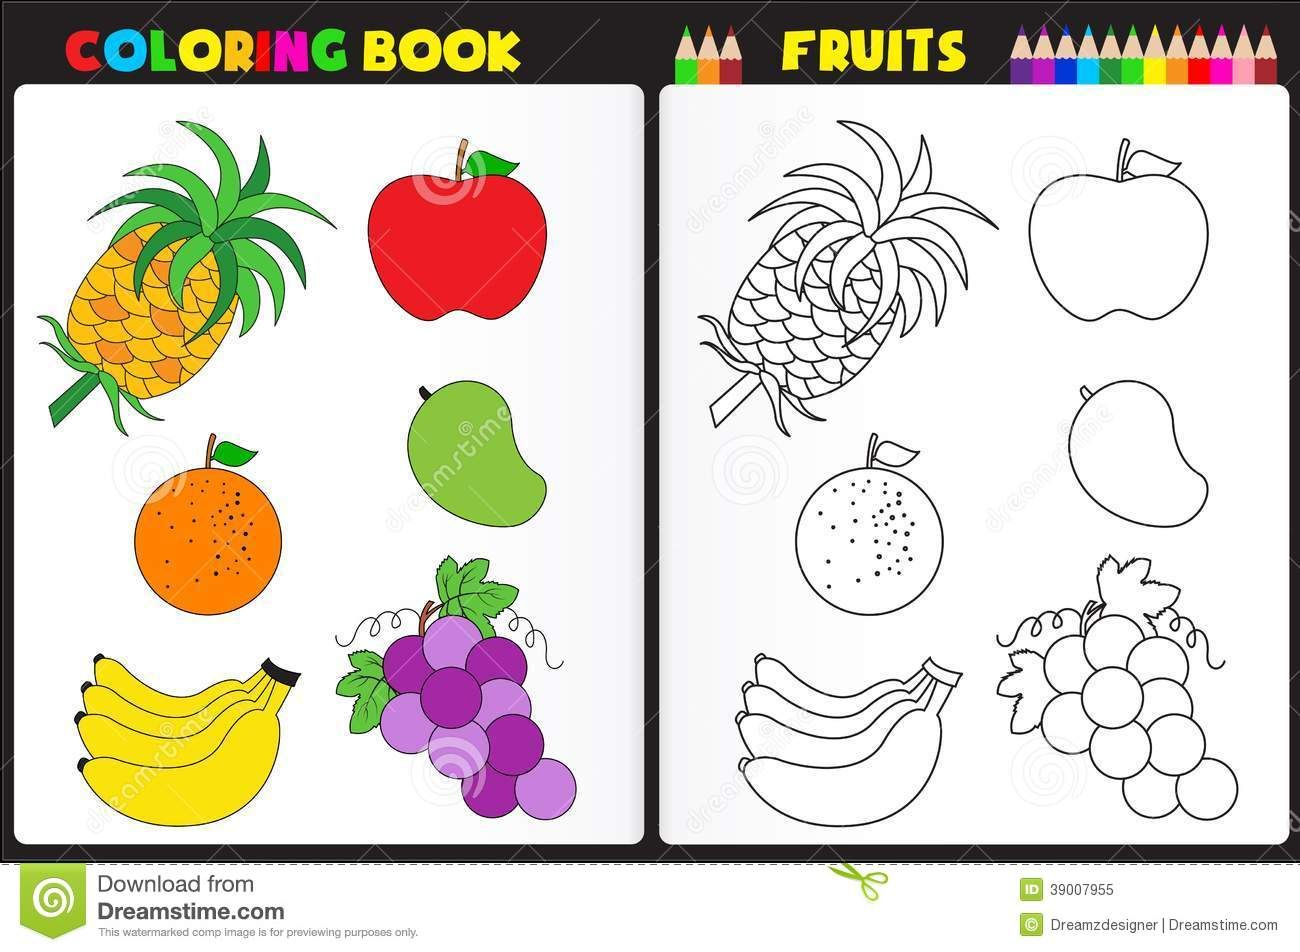 coloring book page fruits nature kids colorful sketches - Kids Color Book